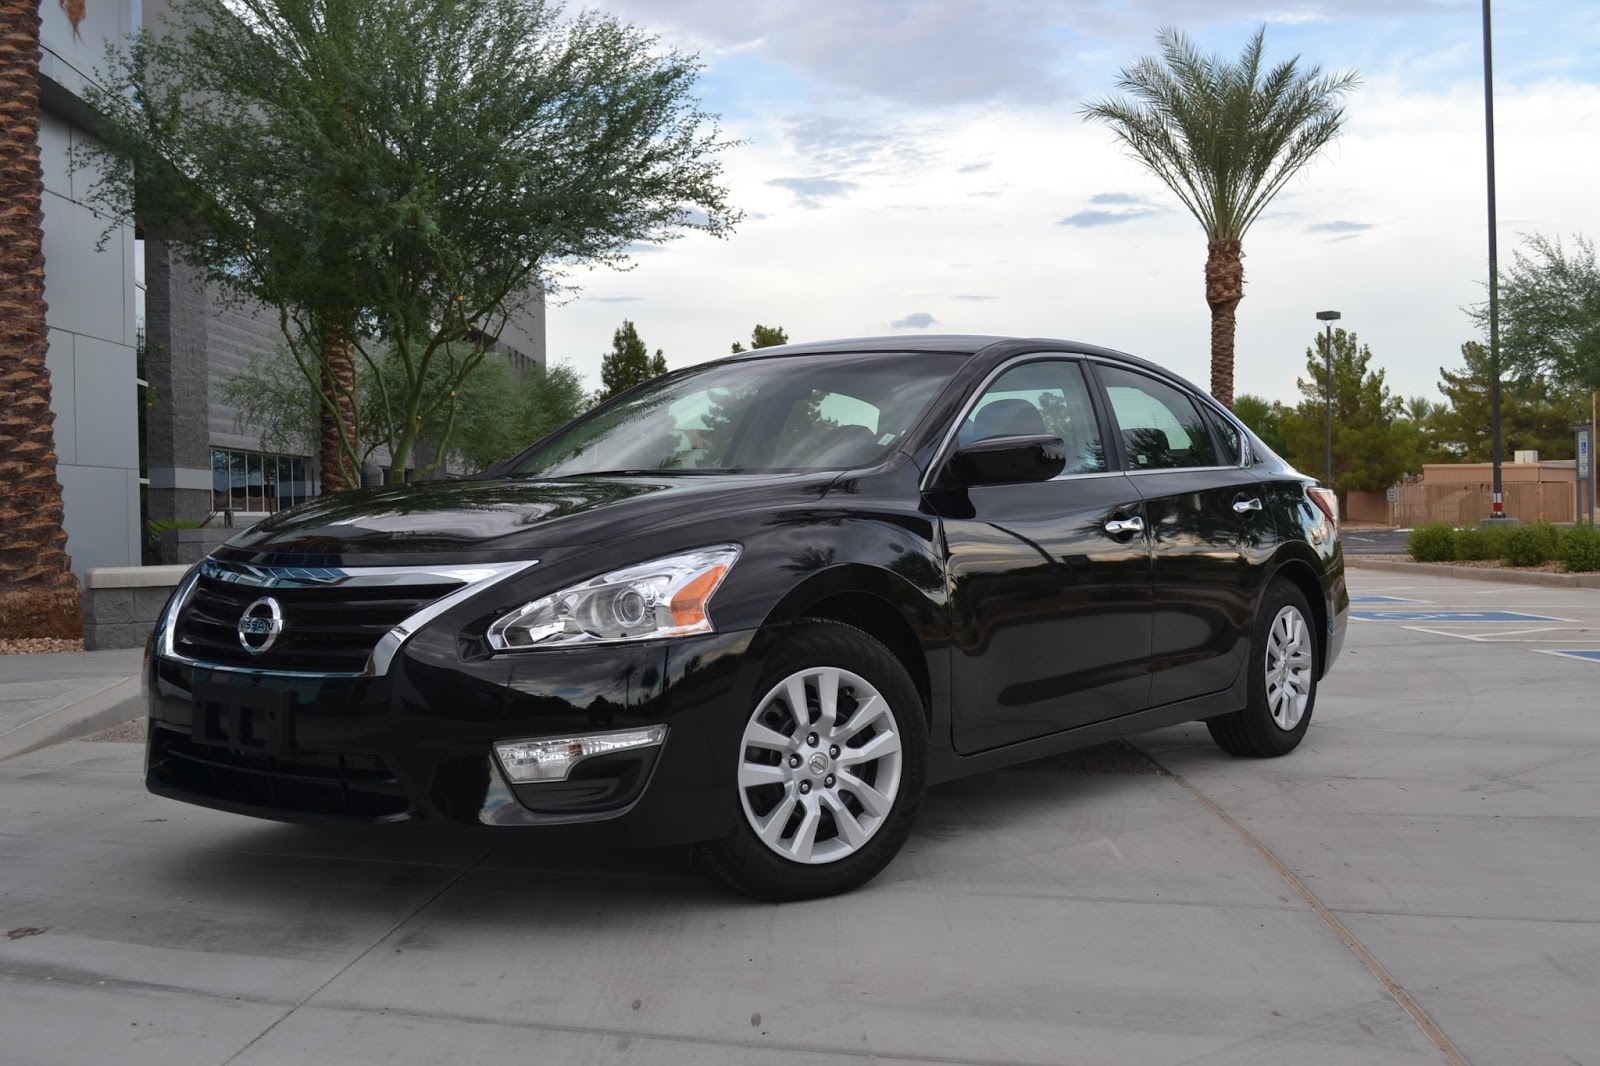 2013 Nissan Altima S 6th Gear Motor Reviews